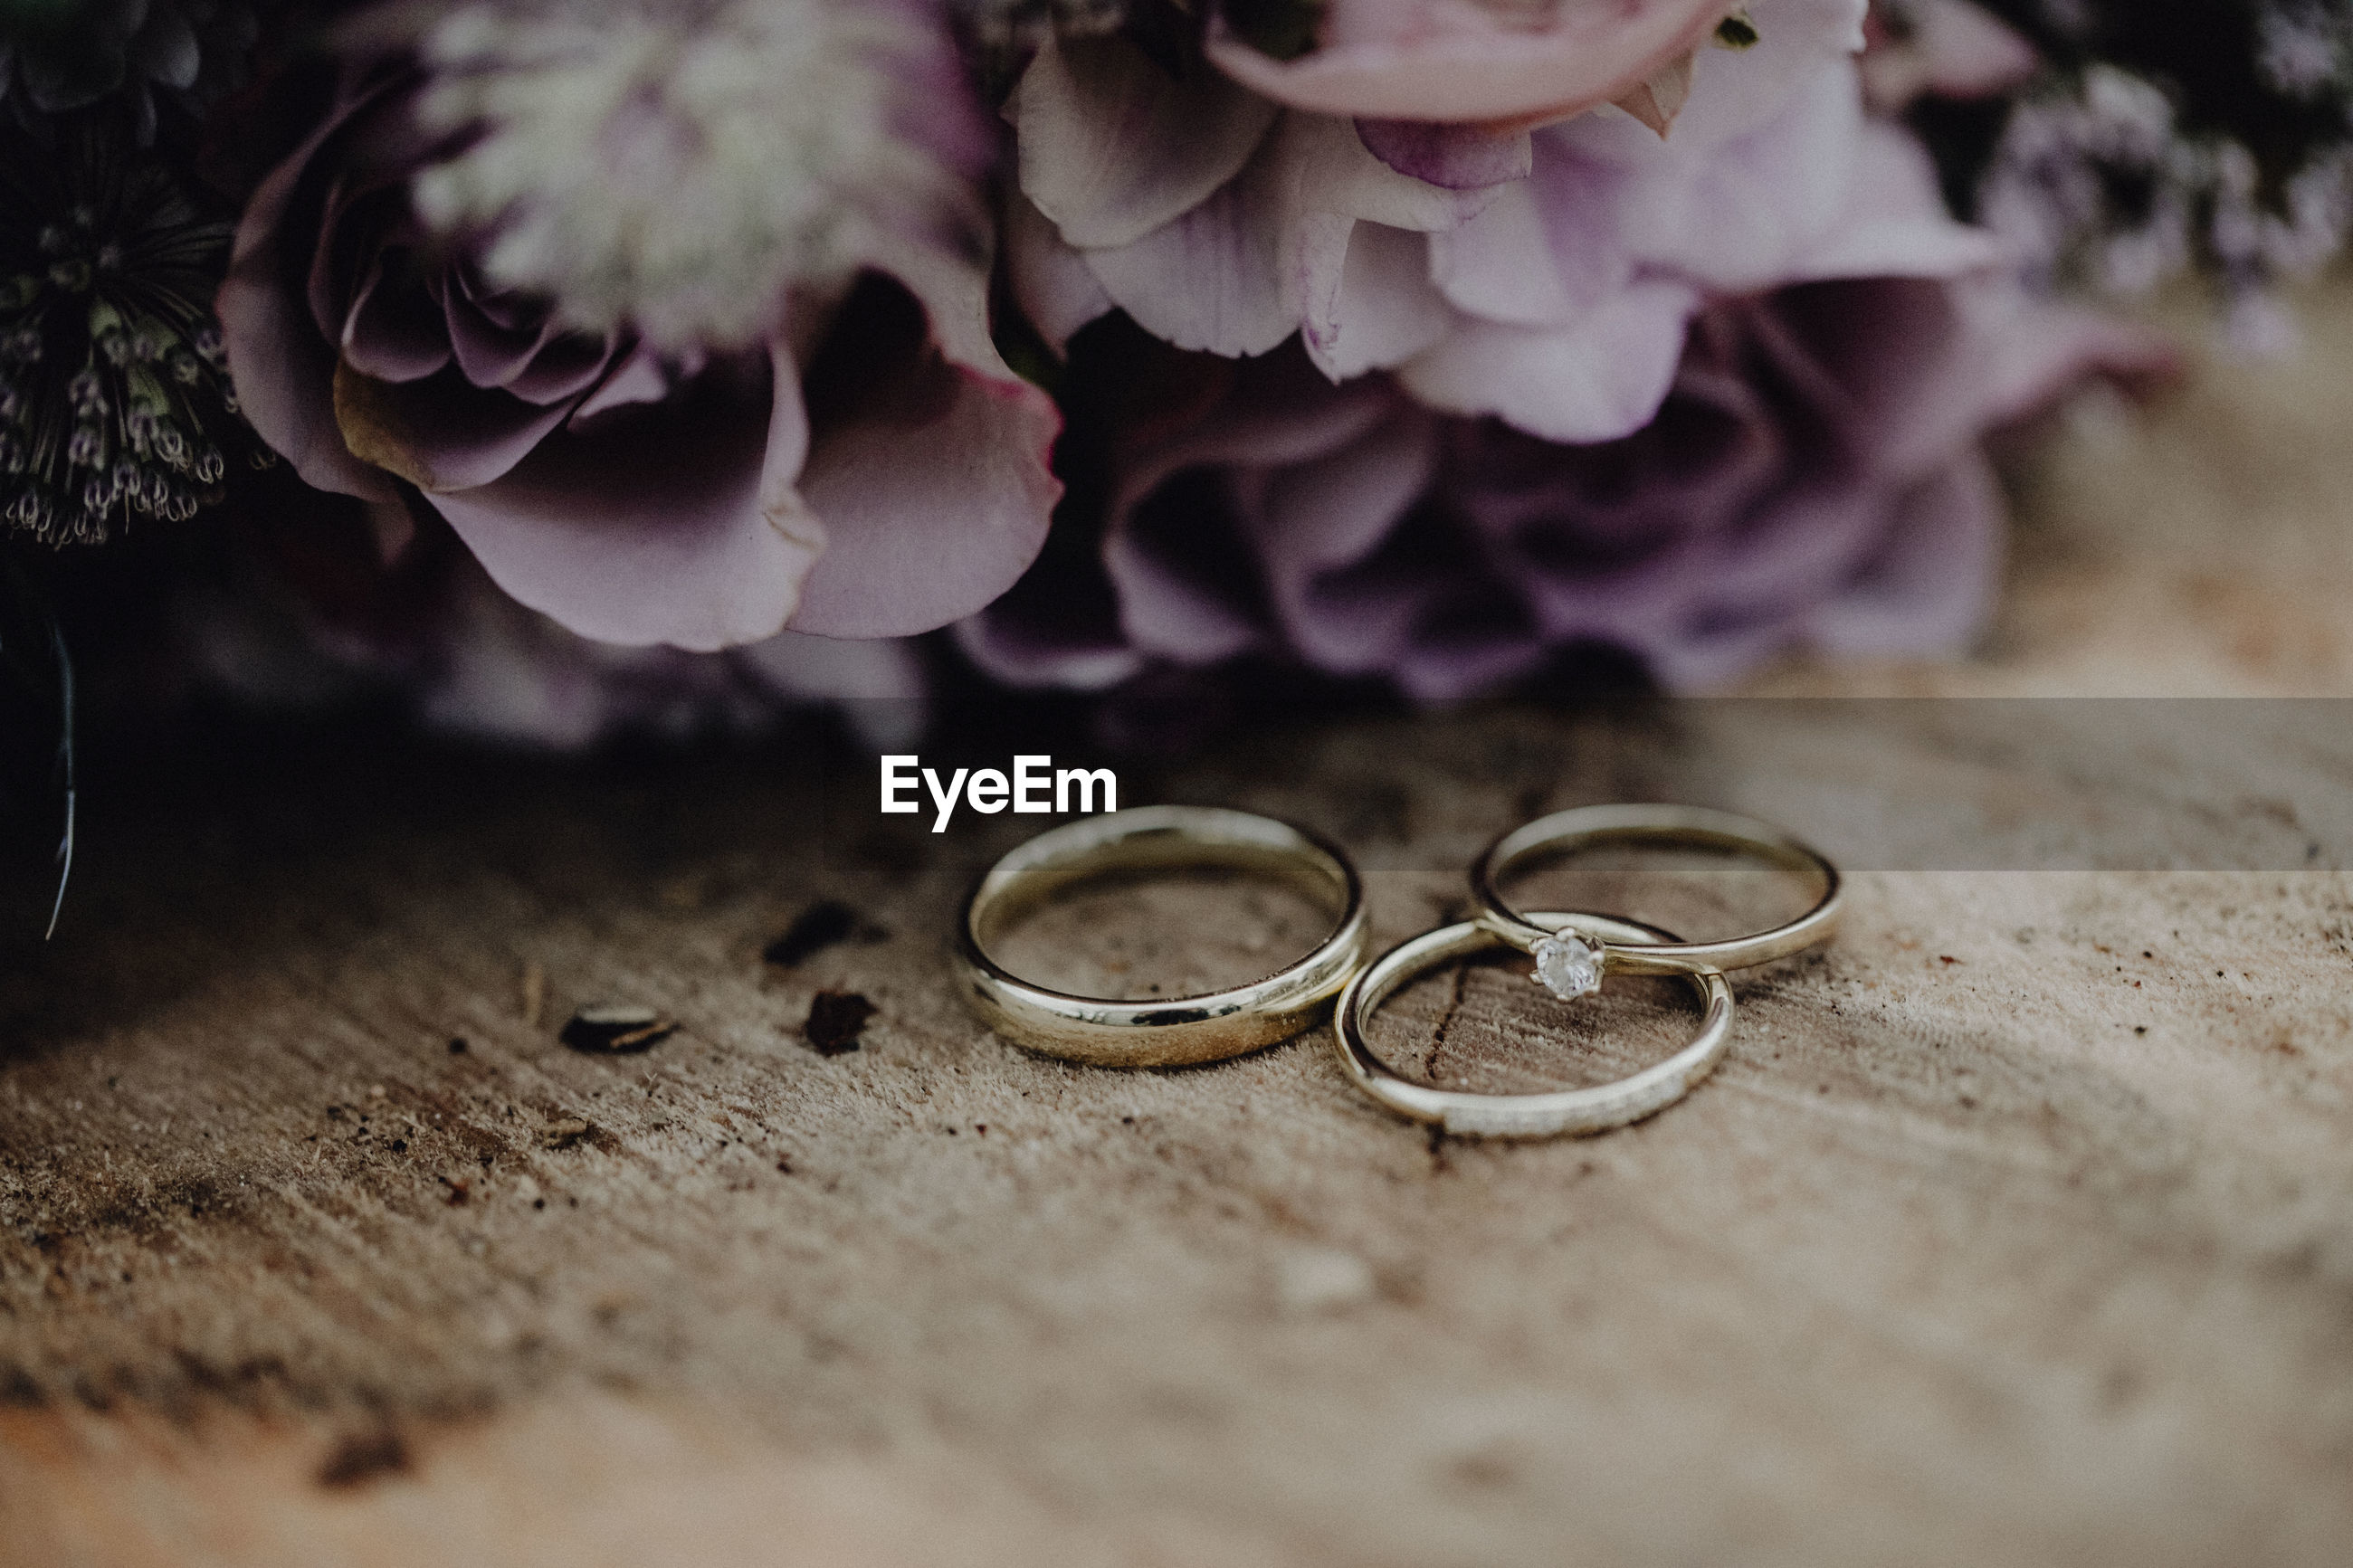 Close-up of wedding rings by flowers on wooden table